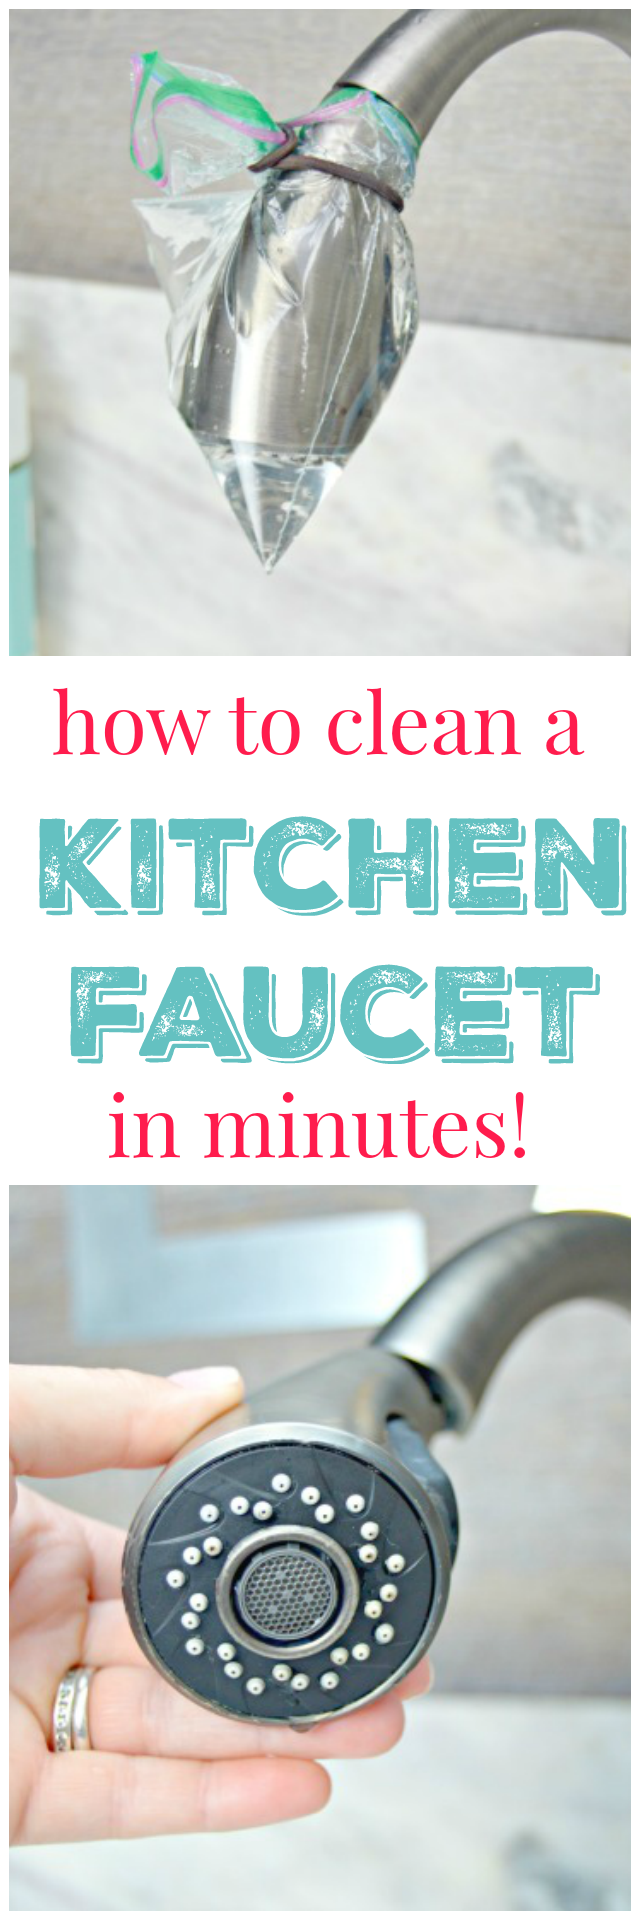 How To Get Your Kitchen Faucet Clean In Minutes